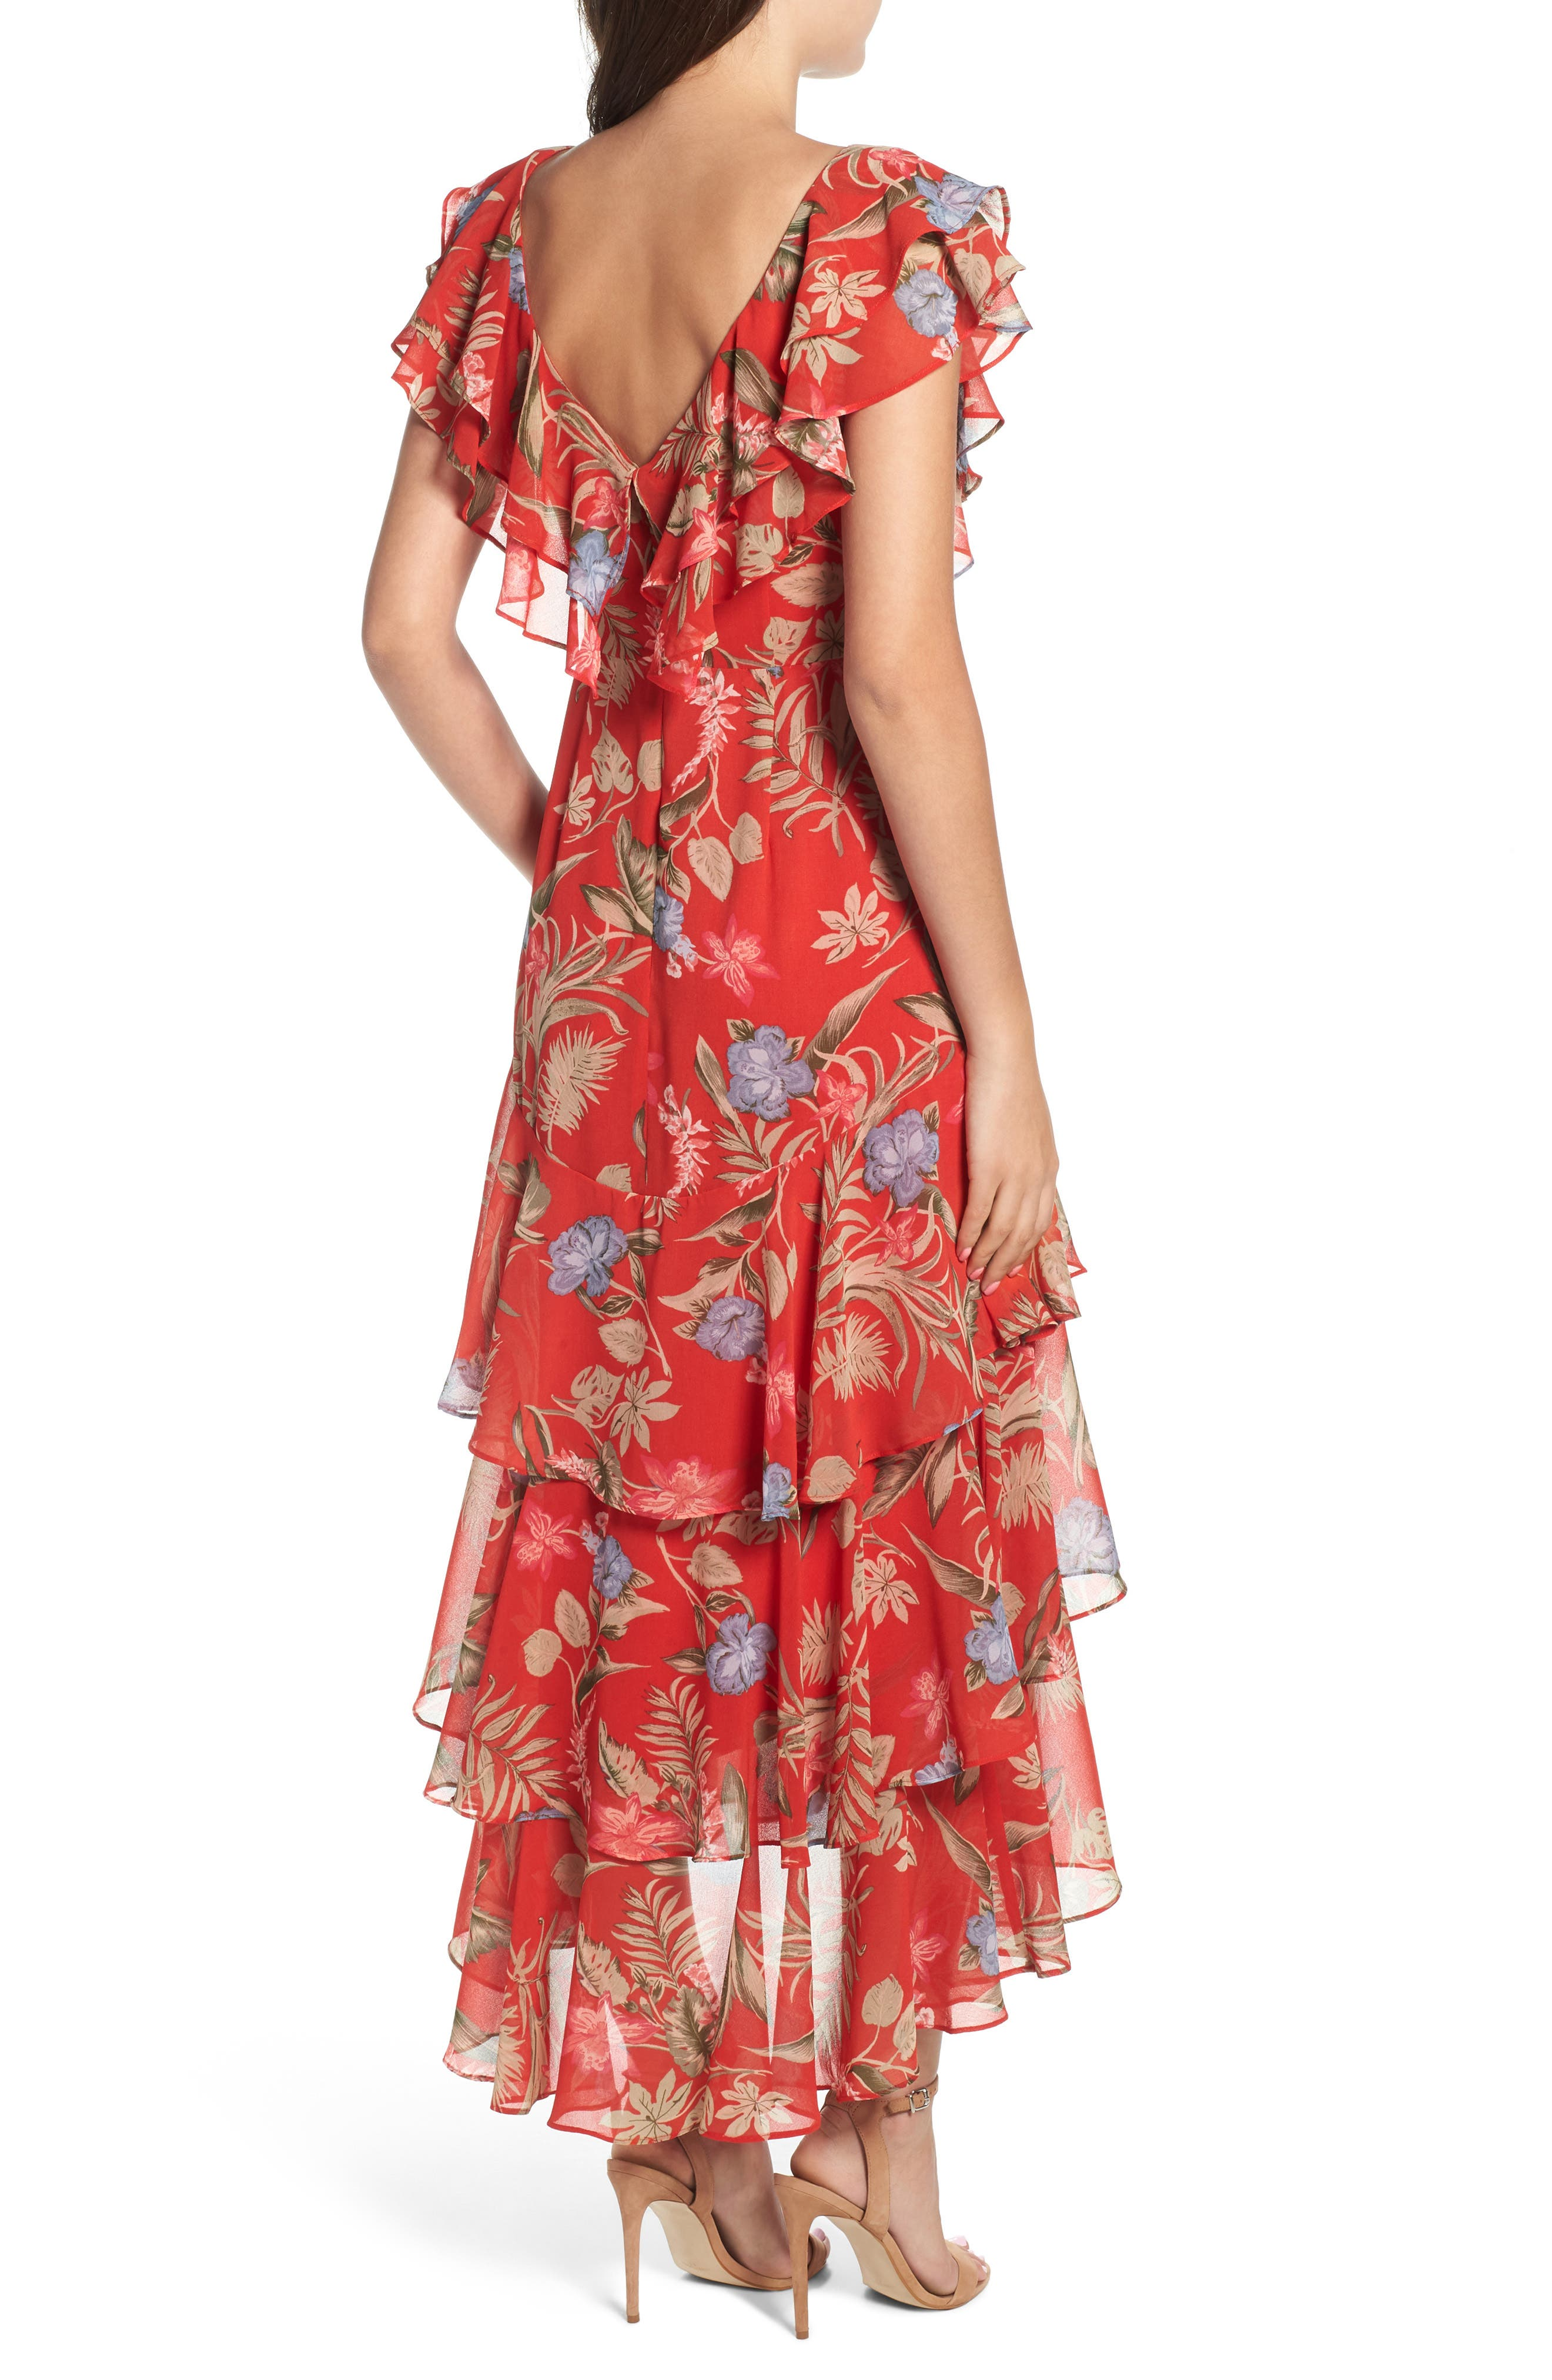 Chelsea Tiered Ruffle Maxi Dress,                             Alternate thumbnail 2, color,                             600